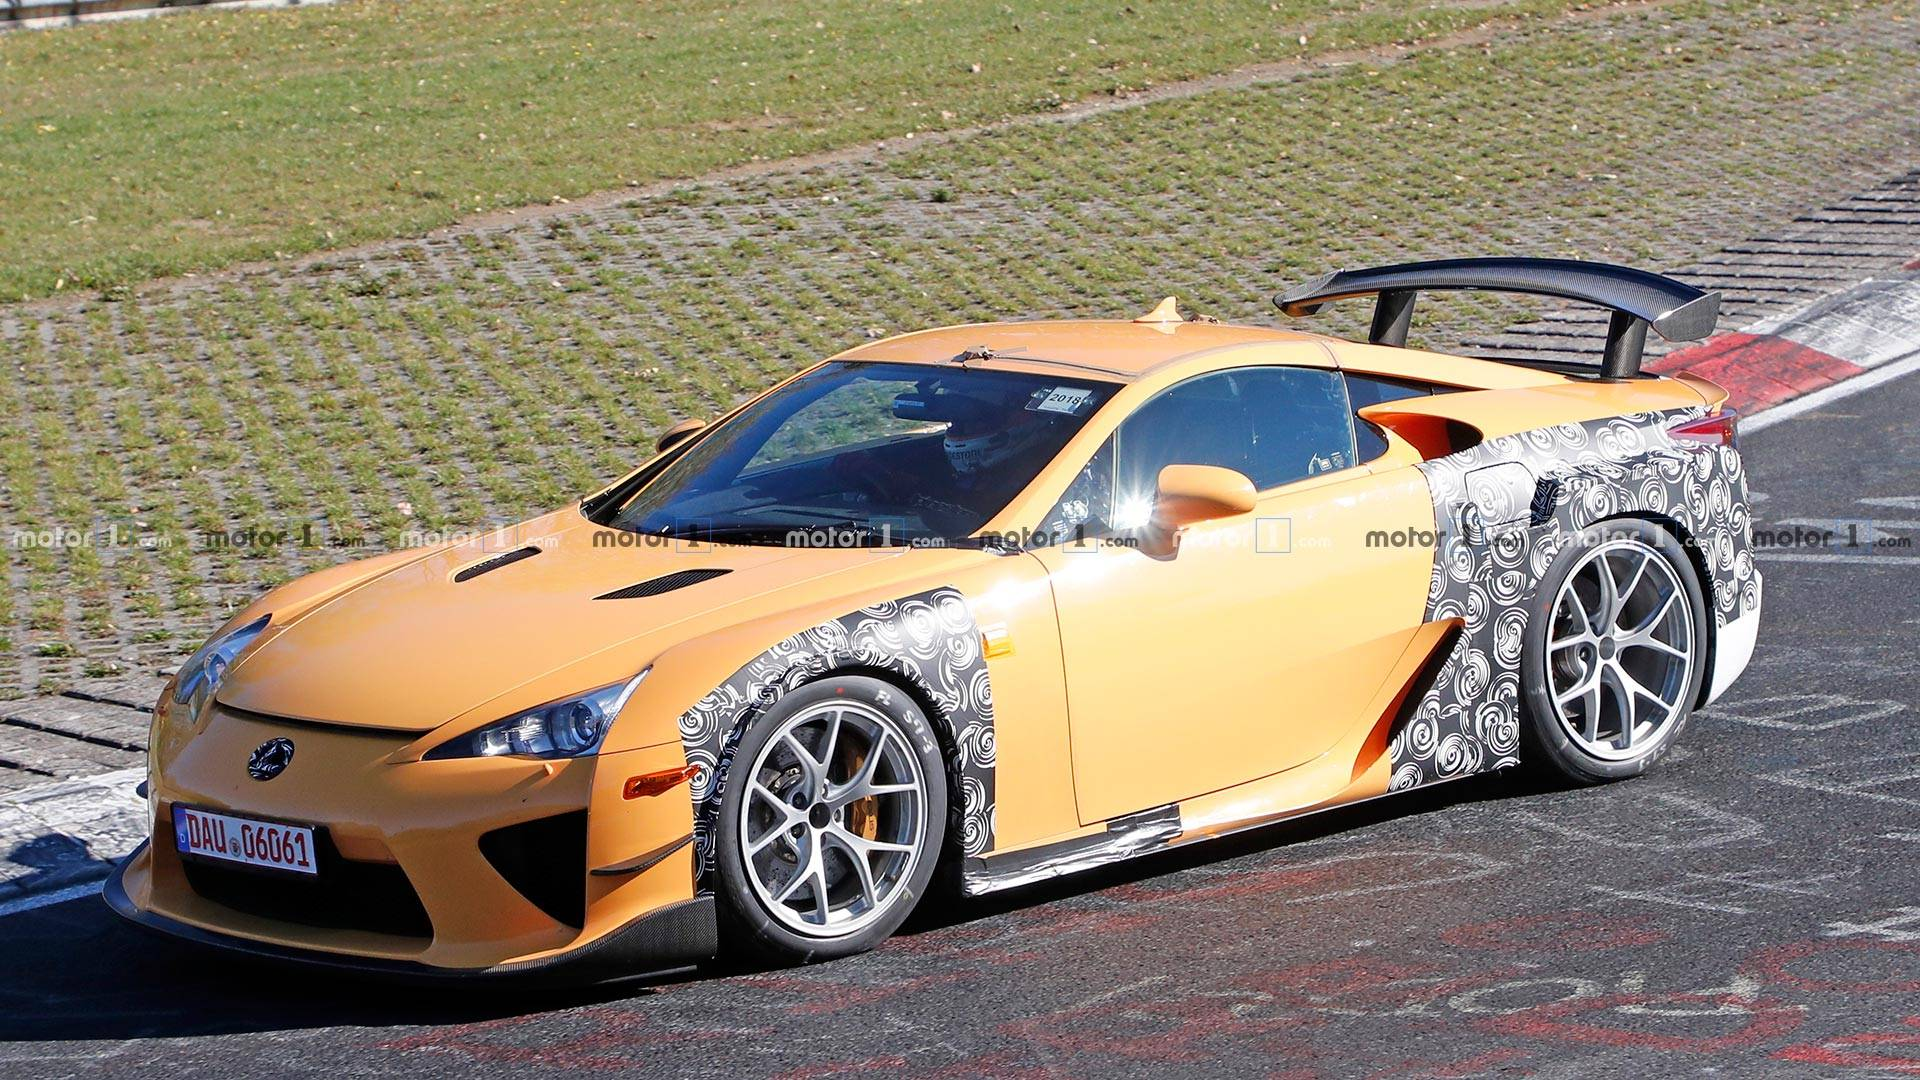 Mysterious Lexus LFA Widebody Test Mule Spied Lapping The 'Ring